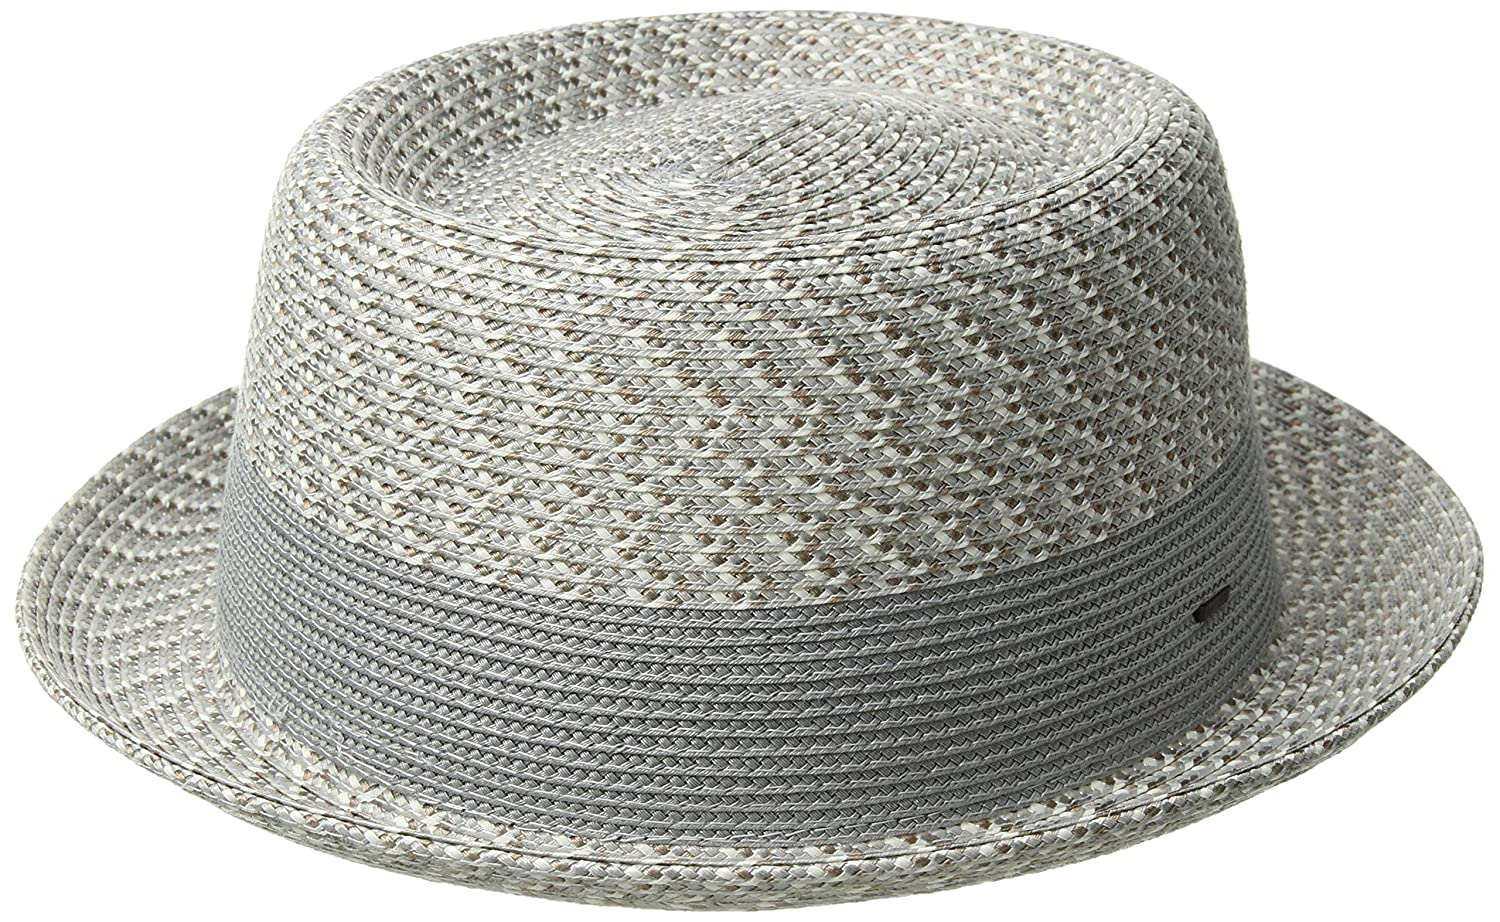 Bailey of Hollywood Men s Telemannes Pork Pie Fedora Hat at Amazon Men s  Clothing store  dab4c9960b2